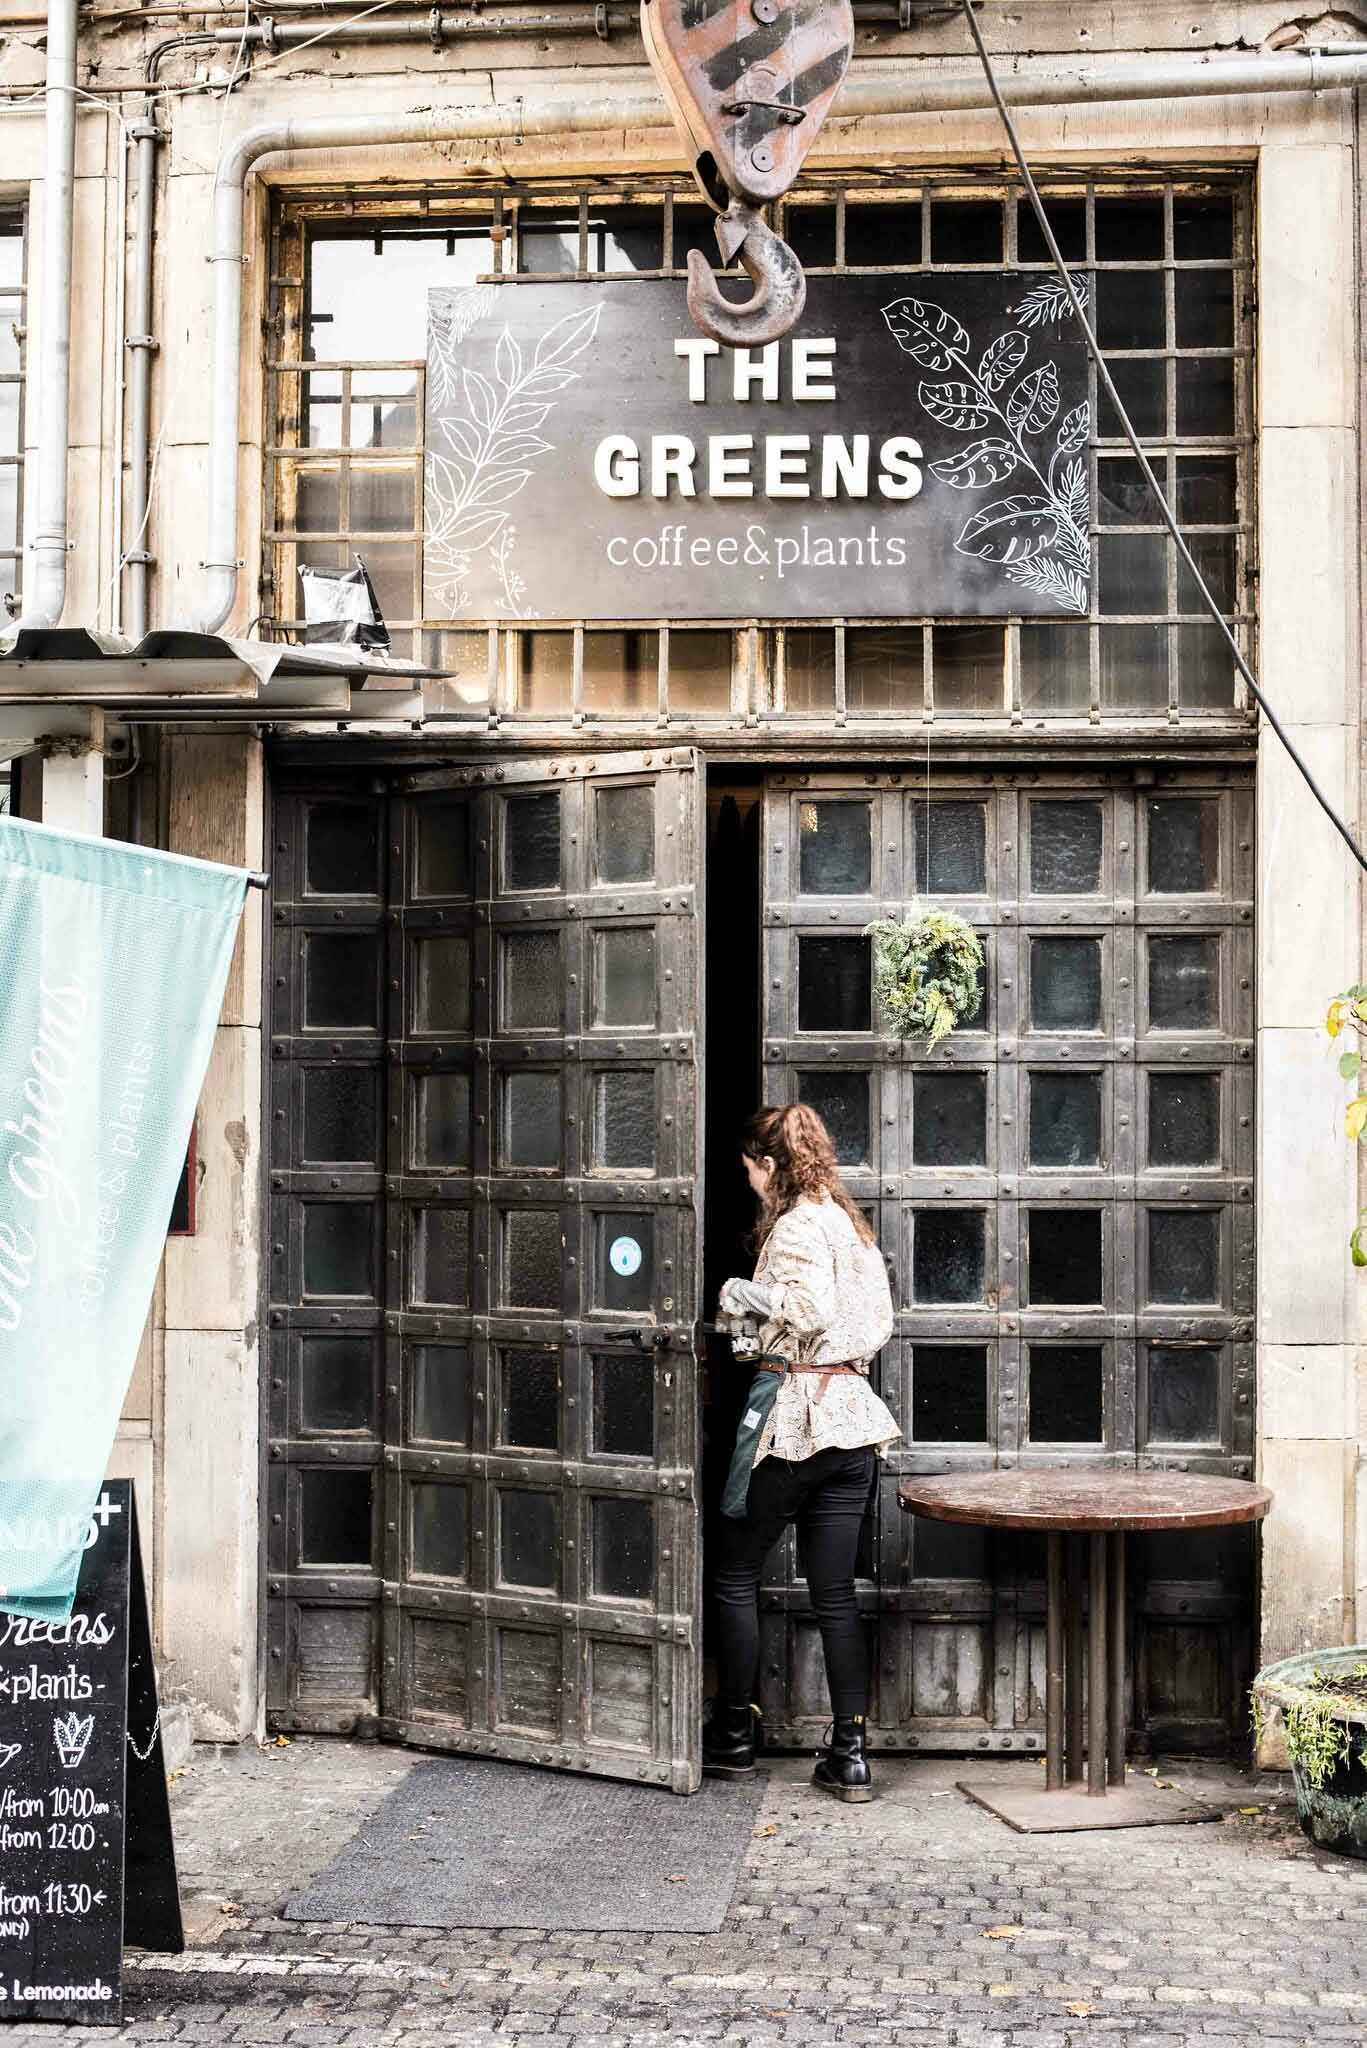 The Greens Café in Berlin